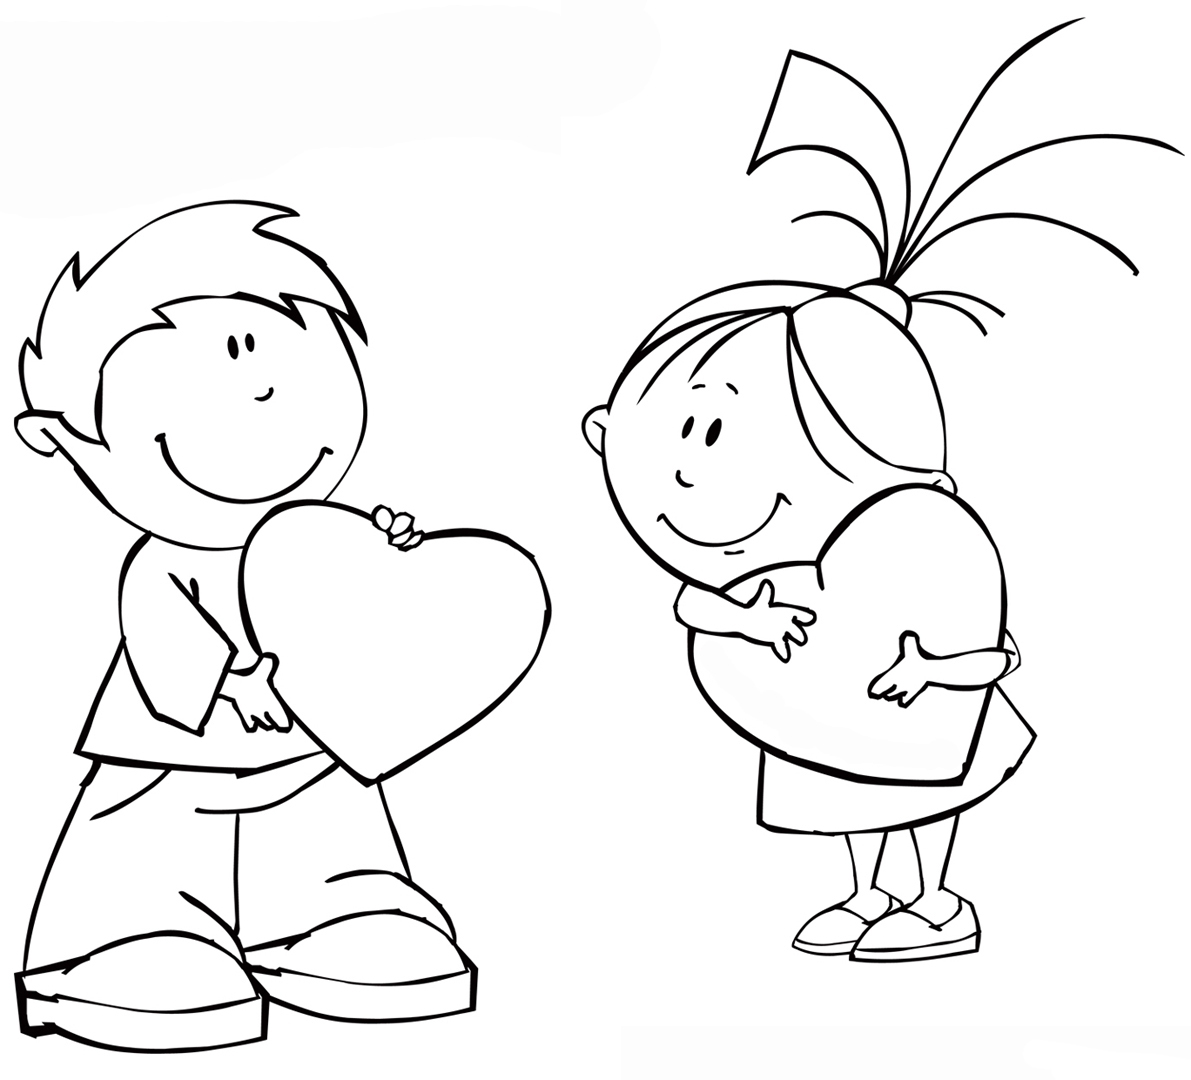 coloring sheet boy and girl boy and girl kissing coloring pages sheet girl coloring and boy